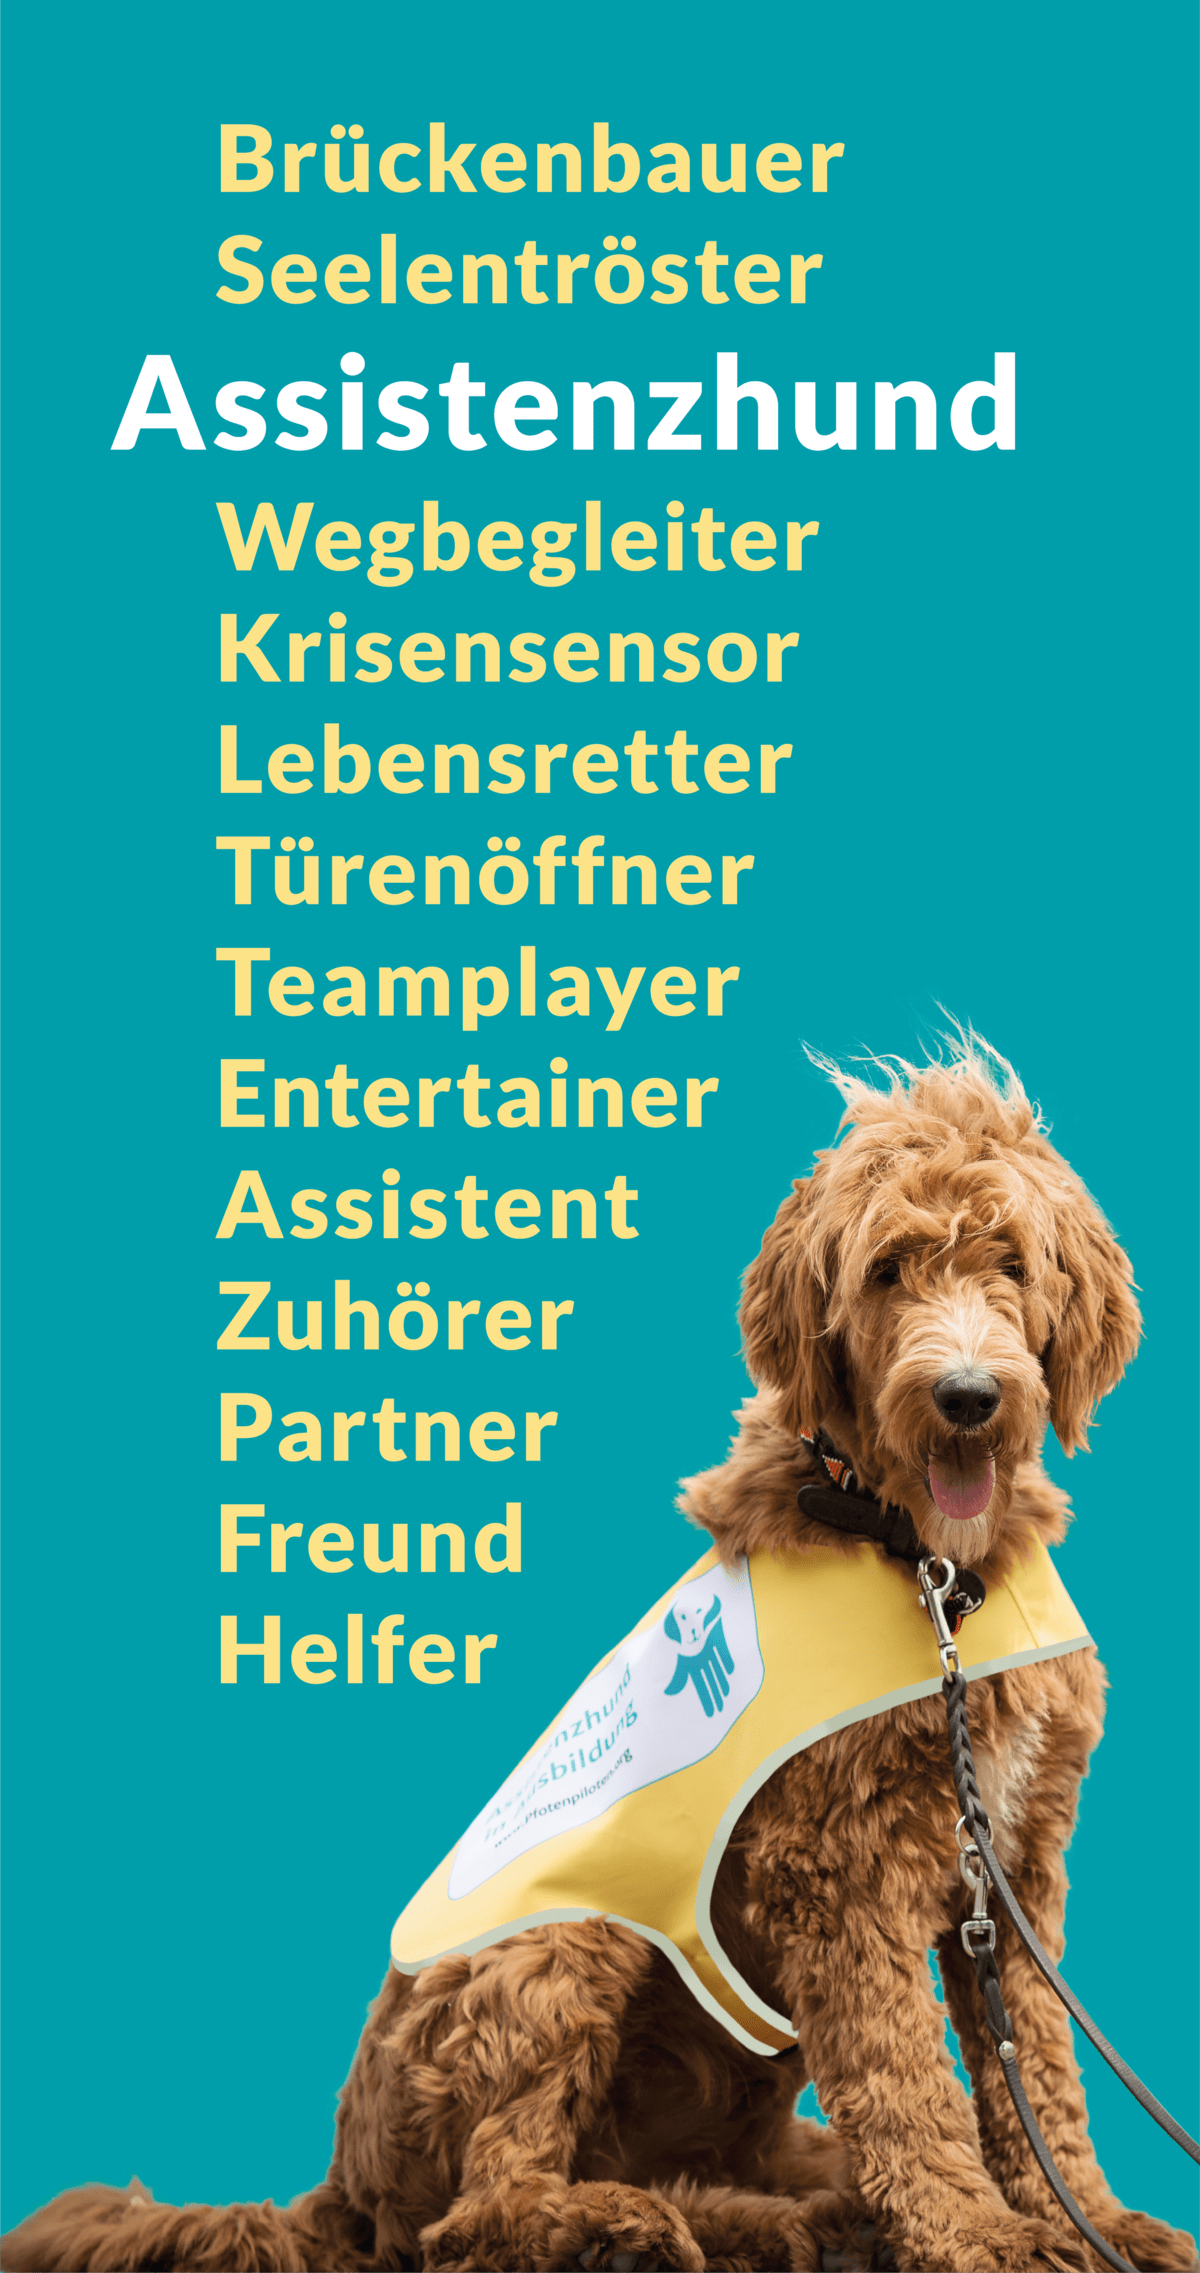 Graphic assistance dog synonyms :: Above and next to a light brown, shaggy Labradoodle assistance dog, along with the bold word